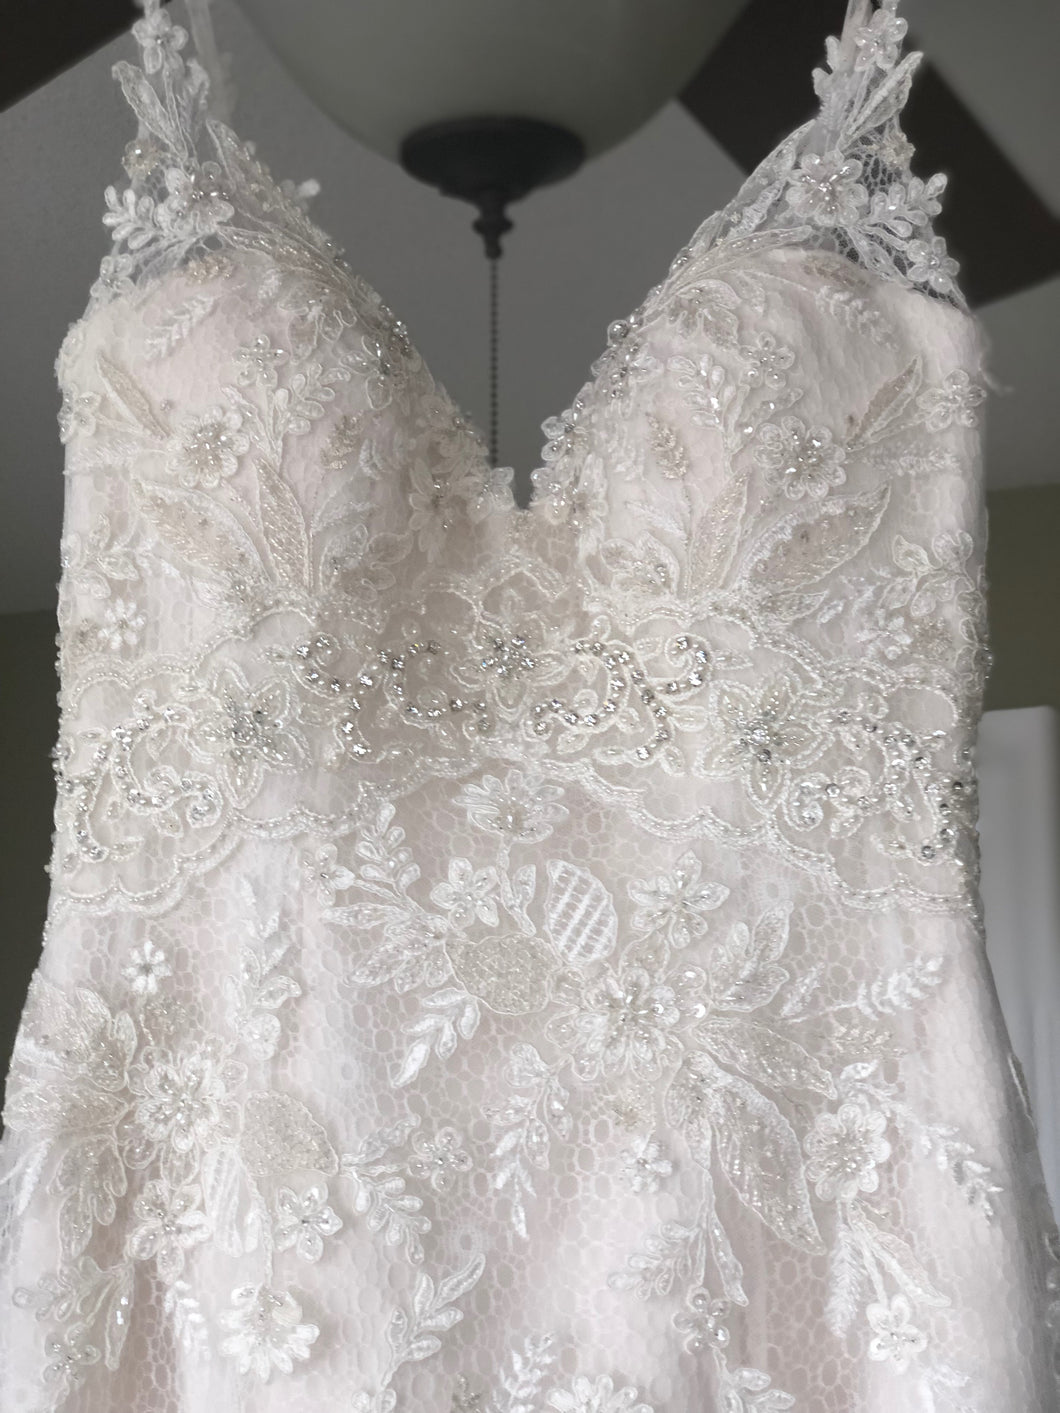 Casablanca 'Sequined Lace' size 6 new wedding dress front view on hanger